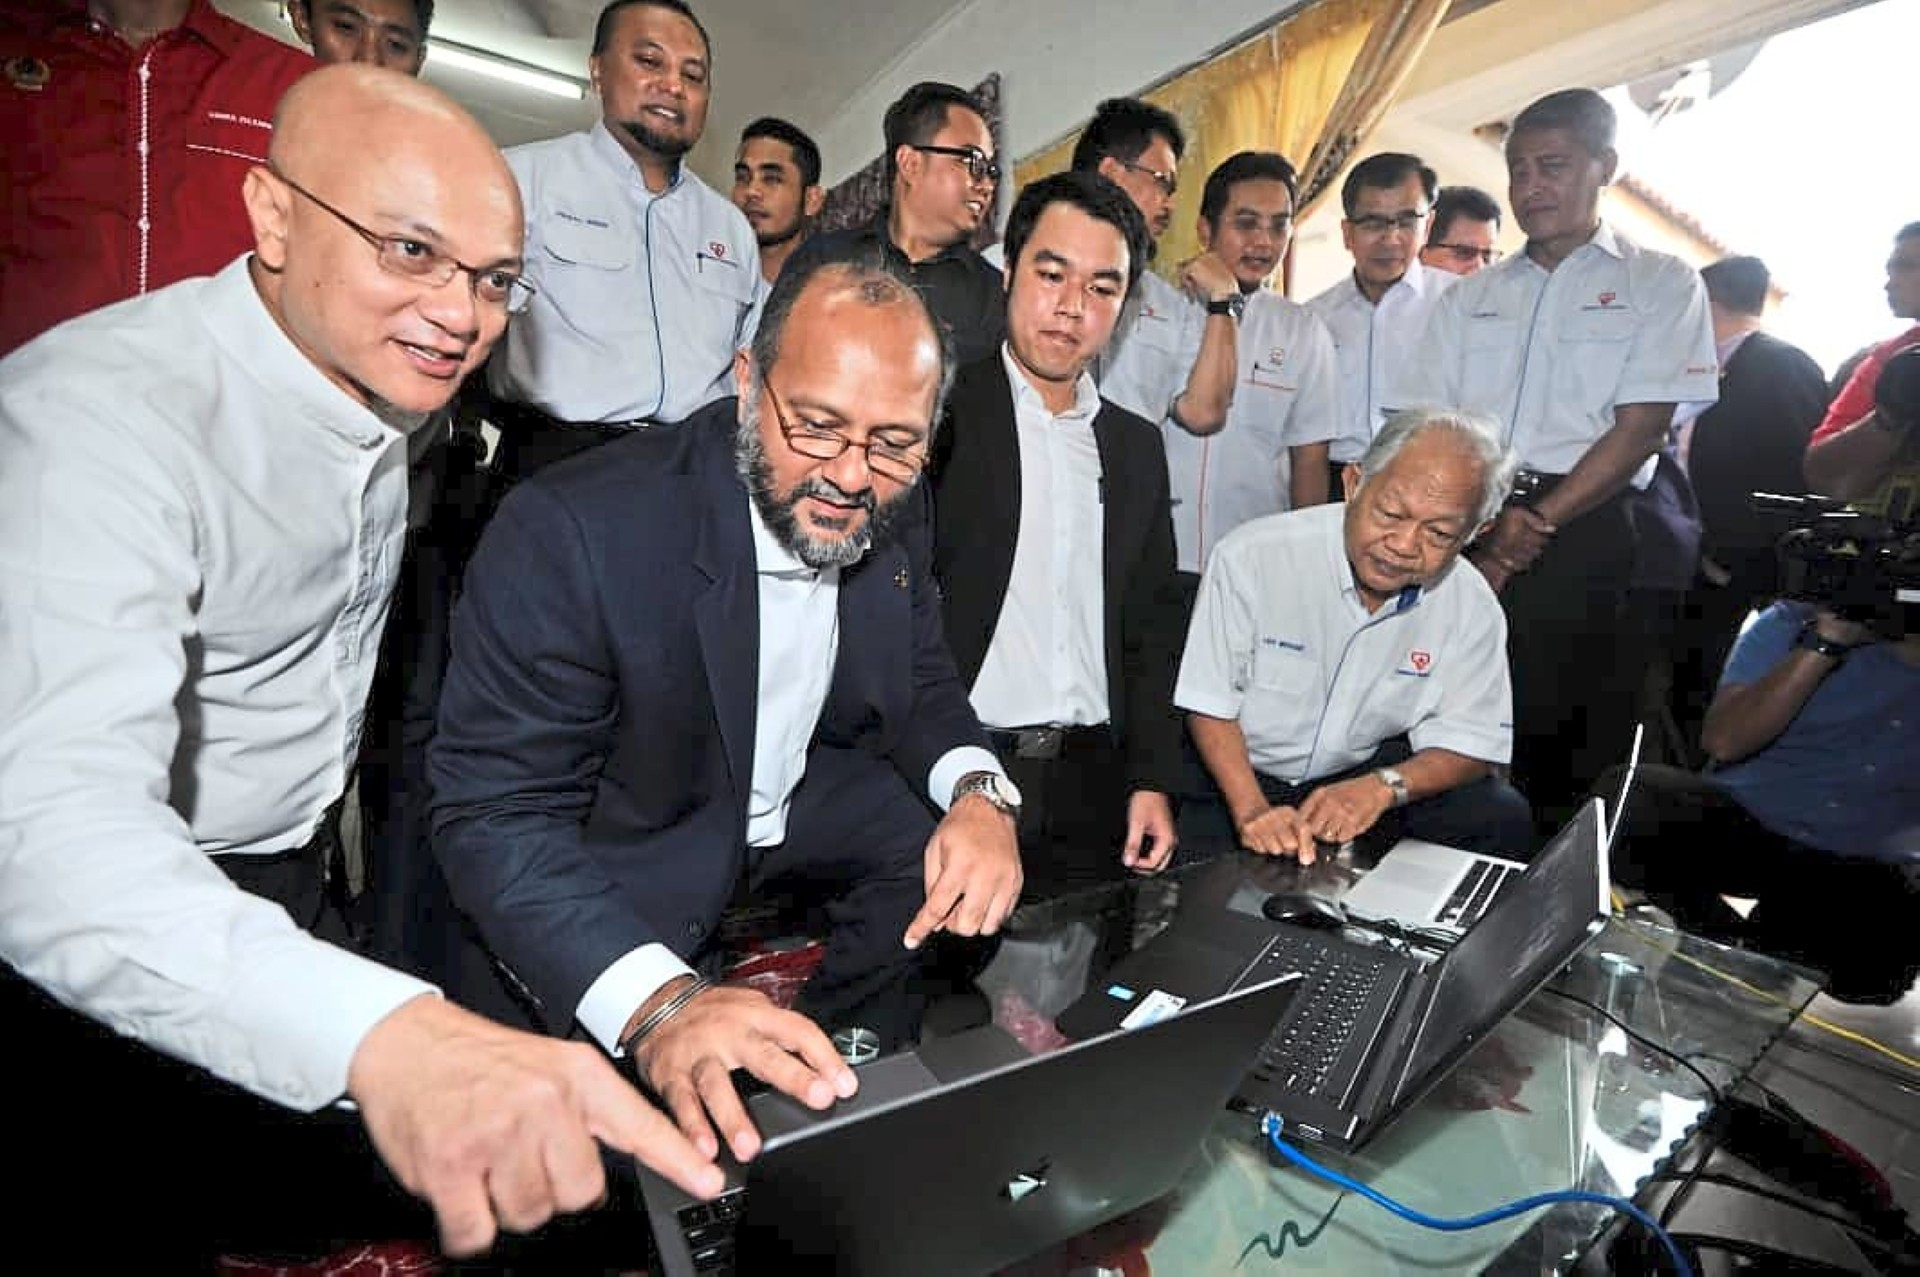 MCMC chairman Al-Ishsal Ishak (left) and Gobind (second from left) try out the high-speed broadband service after the pilot project of the NFCP in Jasin, Melaka.